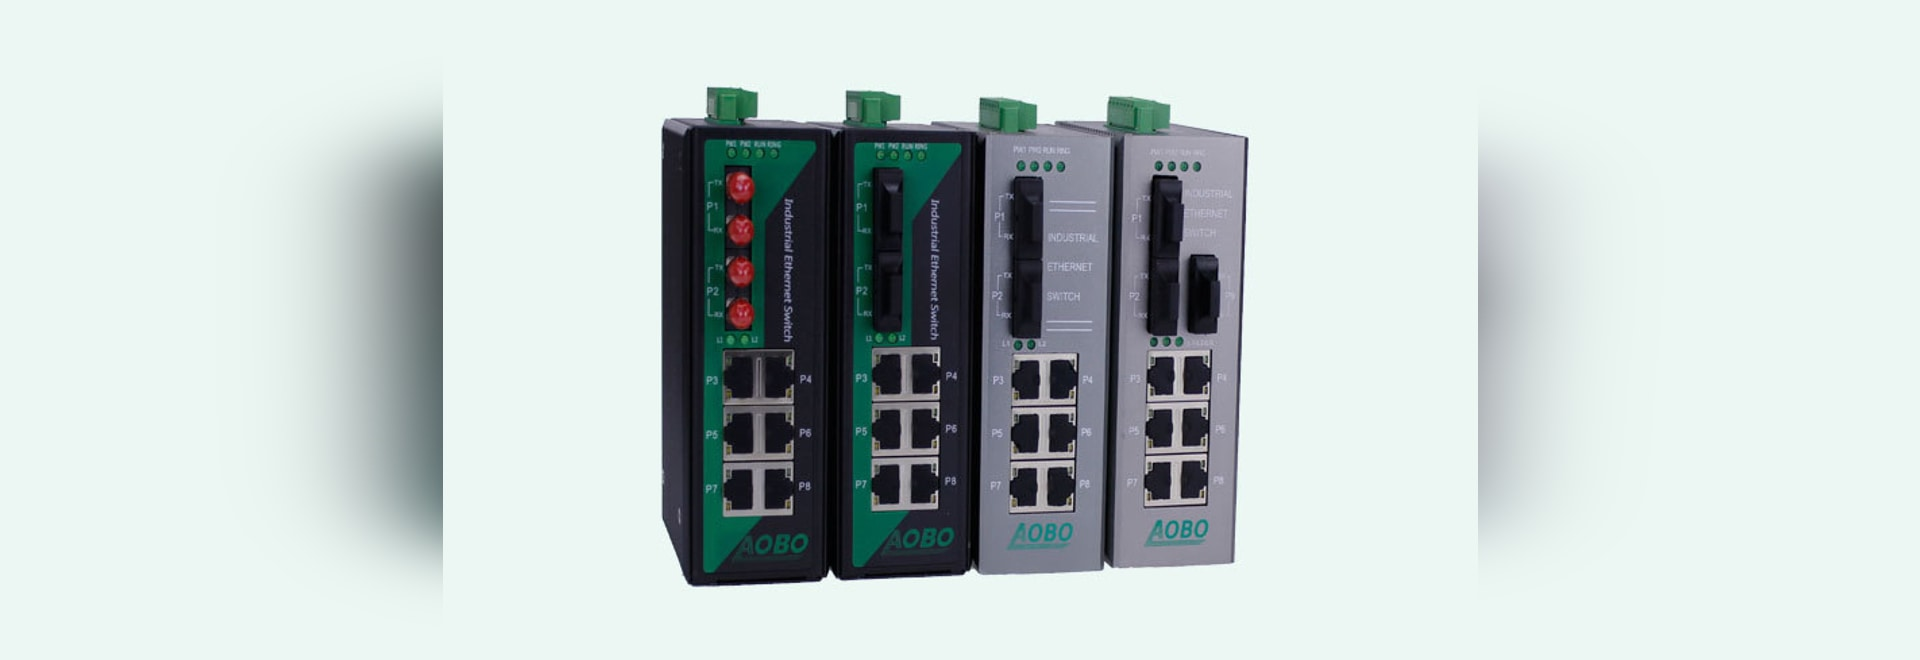 AOBO 9-ports Managed Network Industrial Switches With Rail-type